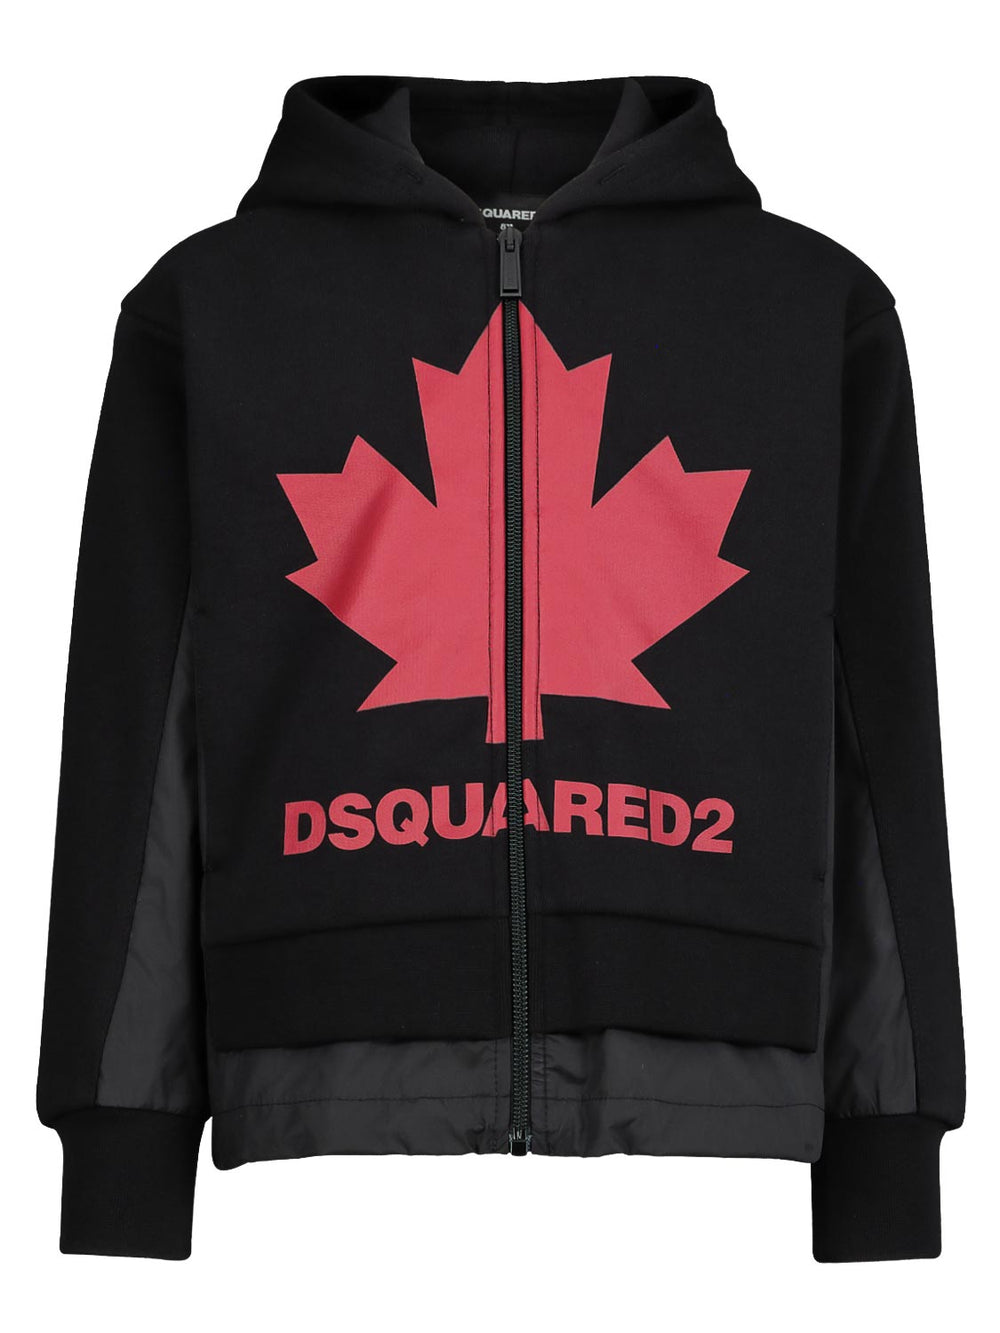 DSQUARED2 Black Jacket With Hoodie